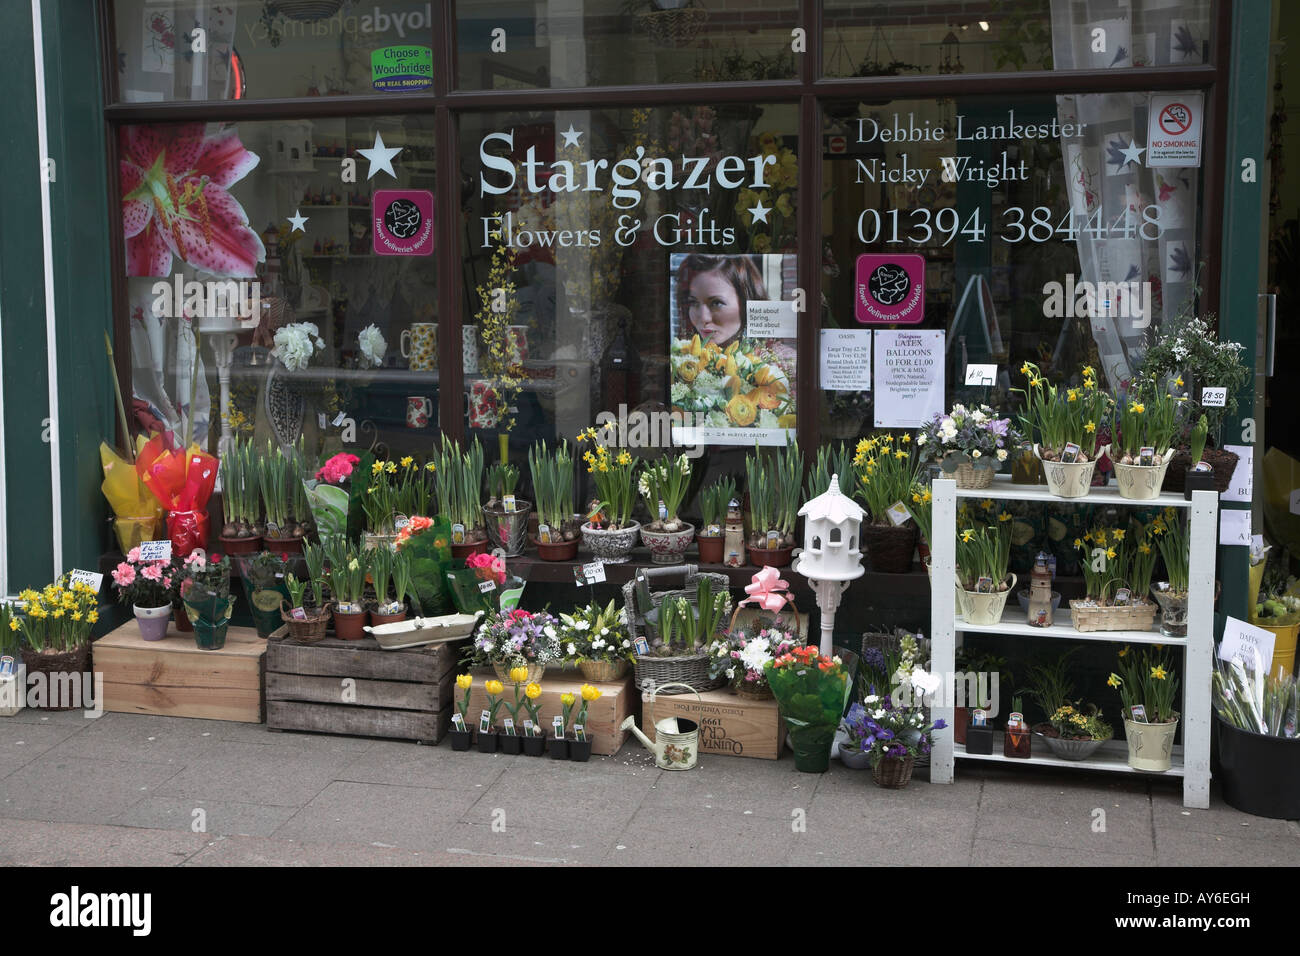 Flower shop window with display of plants and gardening items Stock Ro